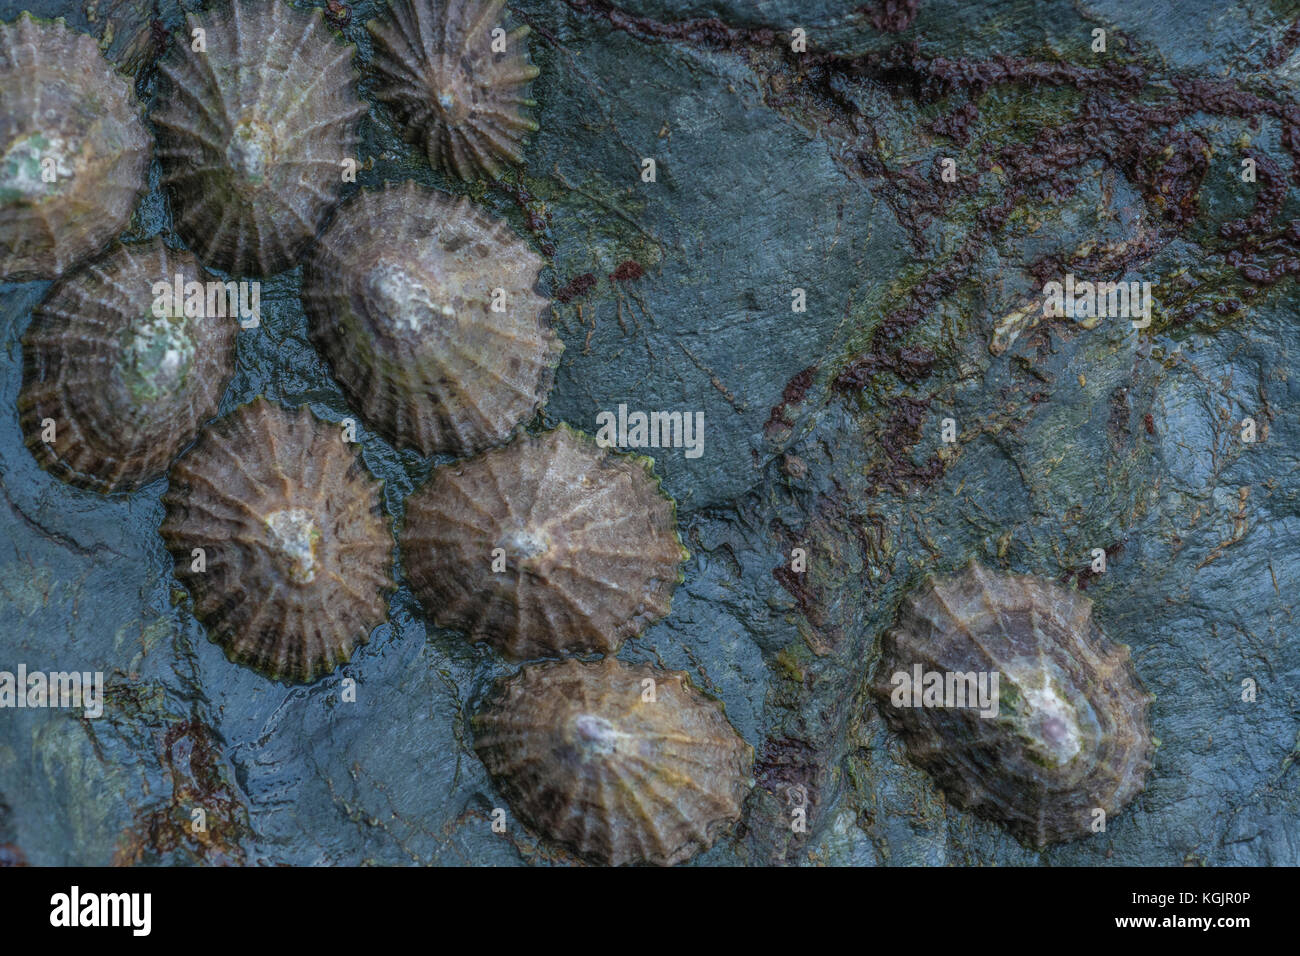 Cluster of Common Limpets (Patella vulgata) on a rocky outcrop at low tide. Limpets are an edible shellfish - more - Stock Image